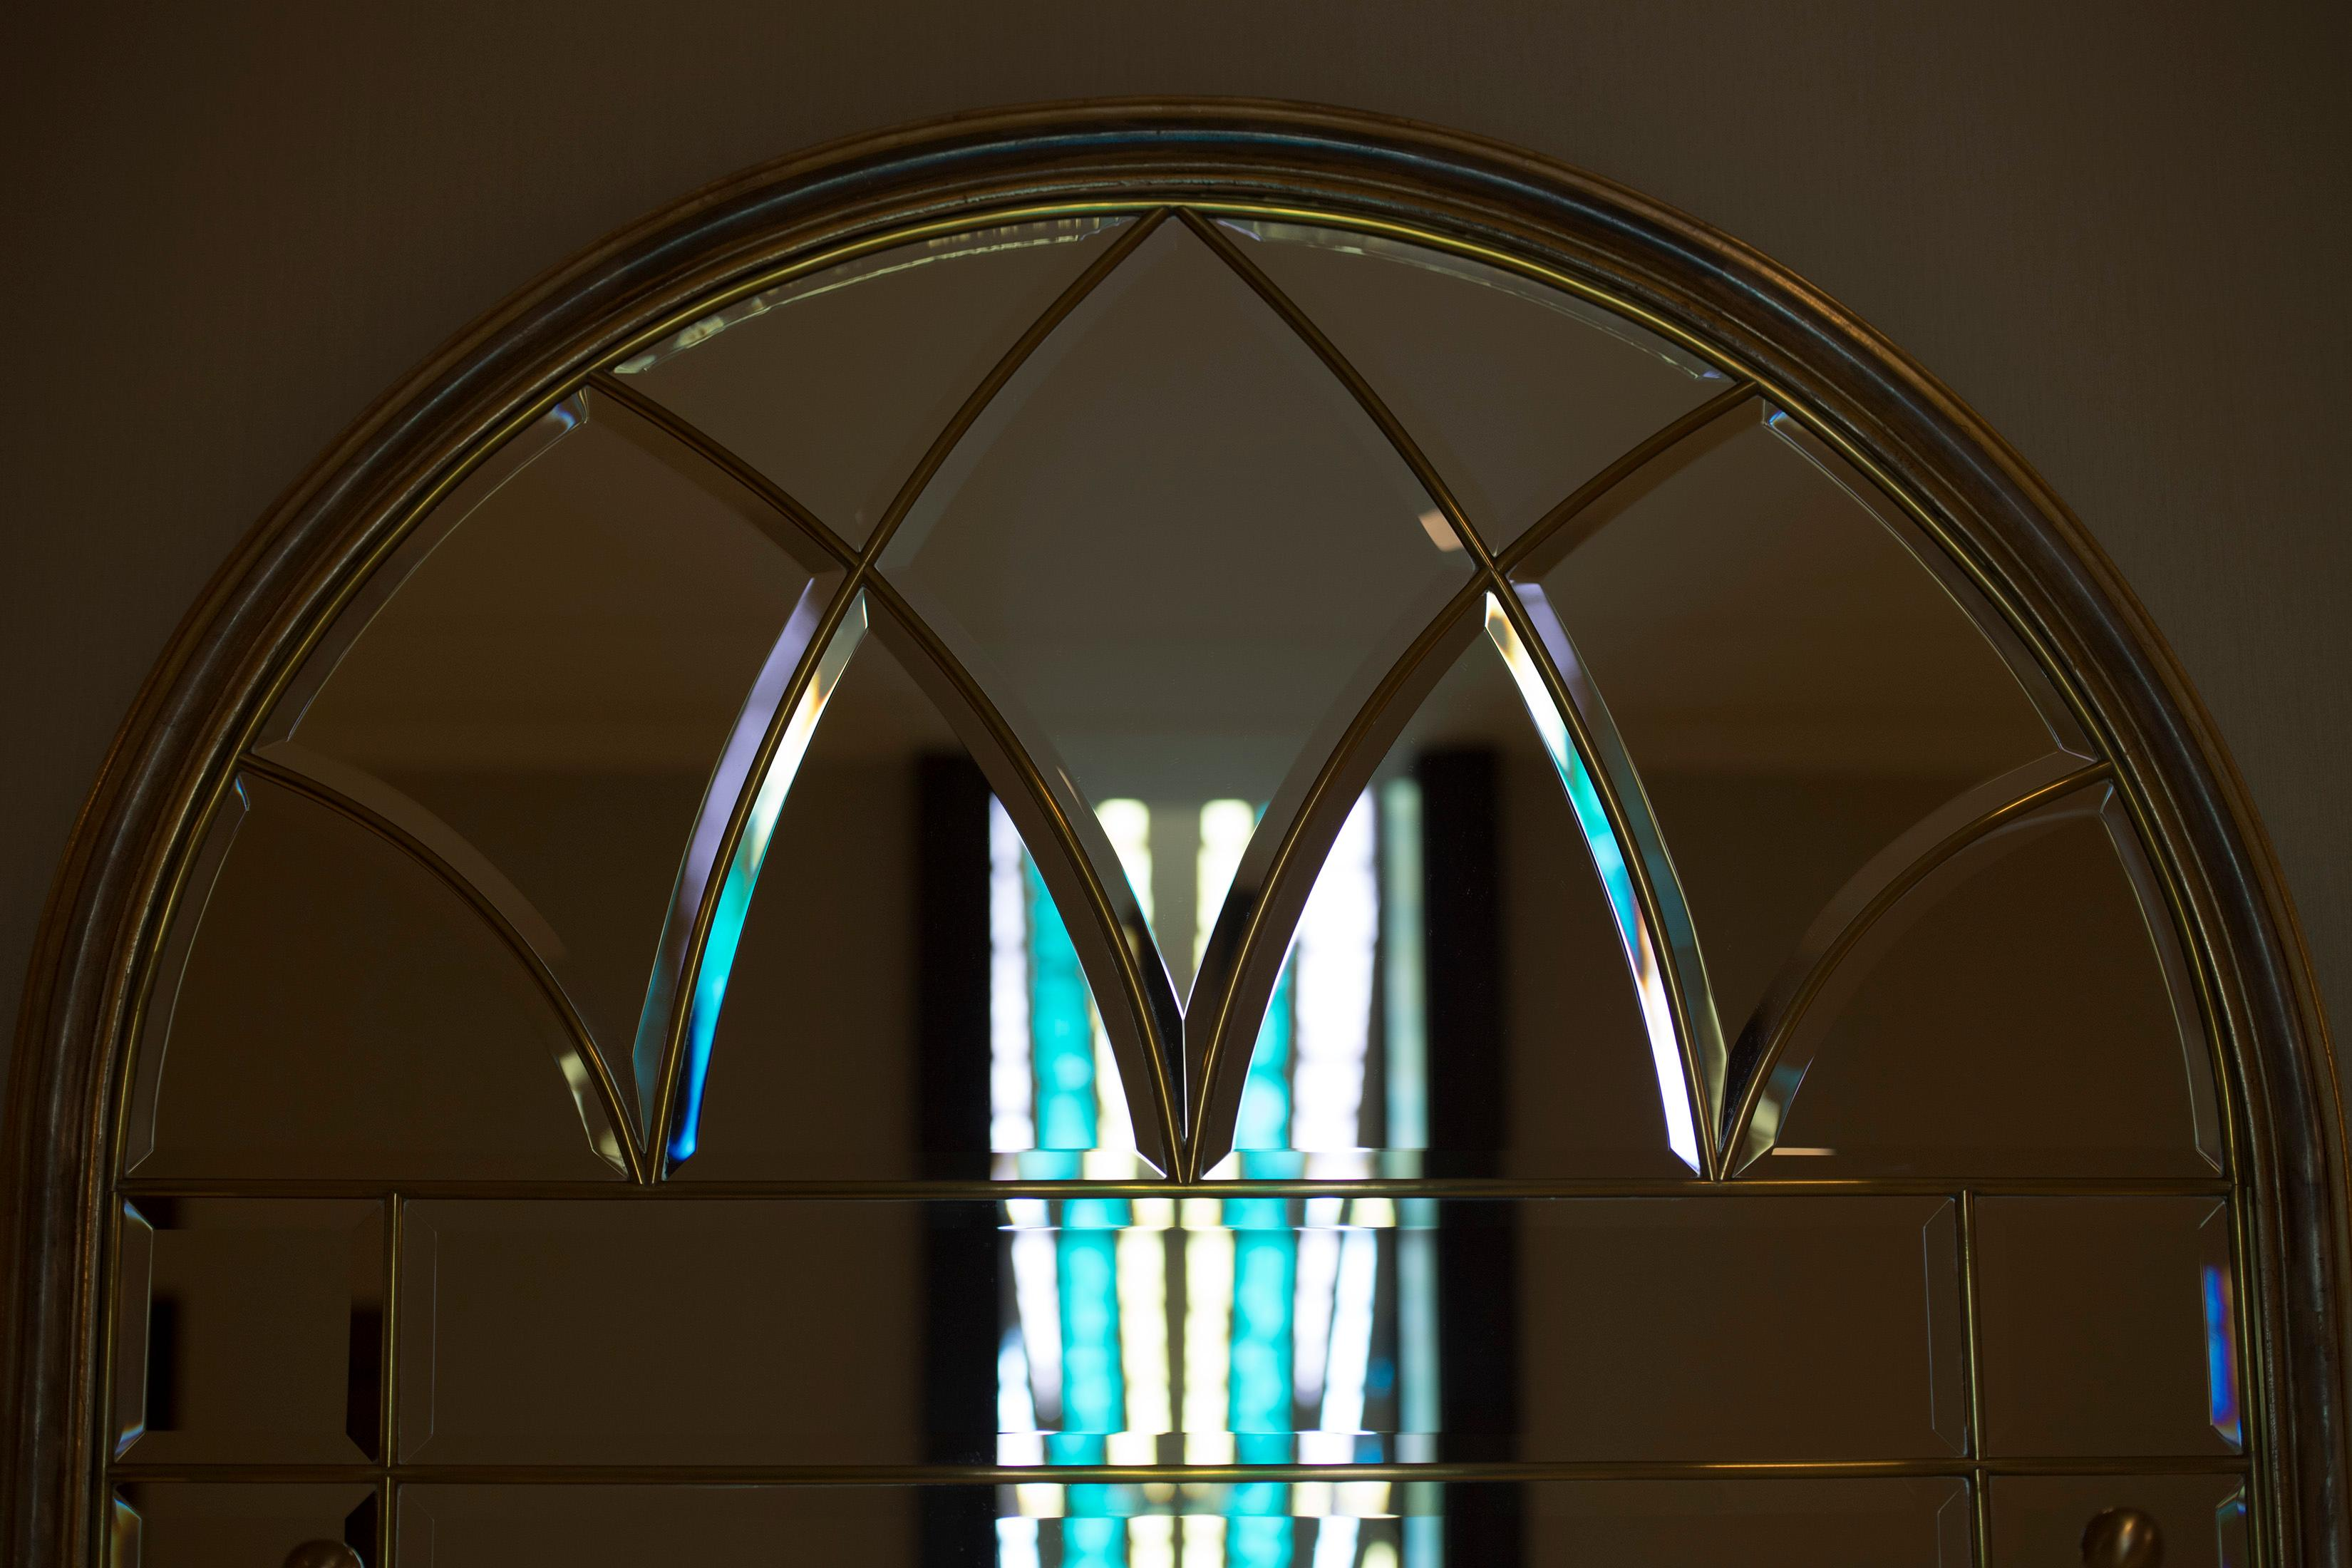 Artisan windows are in many locations in the Jordan River Utah Temple. ©2018 BY INTELLECTUAL RESERVE, INC. ALL RIGHTS RESERVED.